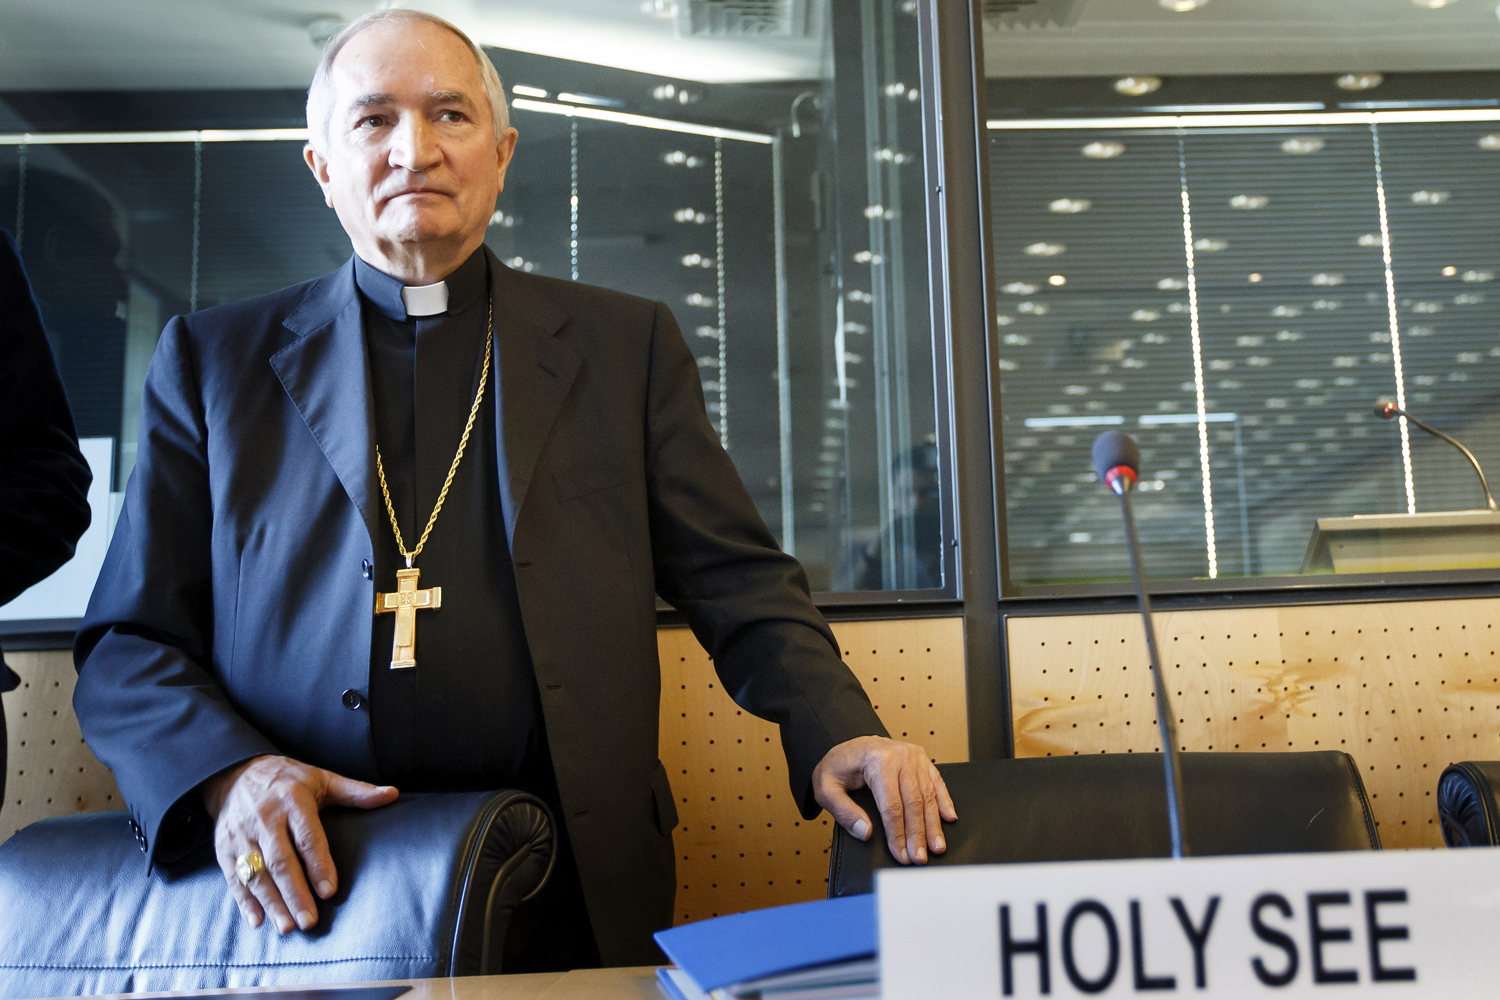 Archbishop Silvano Tomasi arrives prior to the U.N. torture committee hearing on the Vatican, at the headquarters of the office of the High Commissioner for Human Rights in Geneva on May 5, 2014.